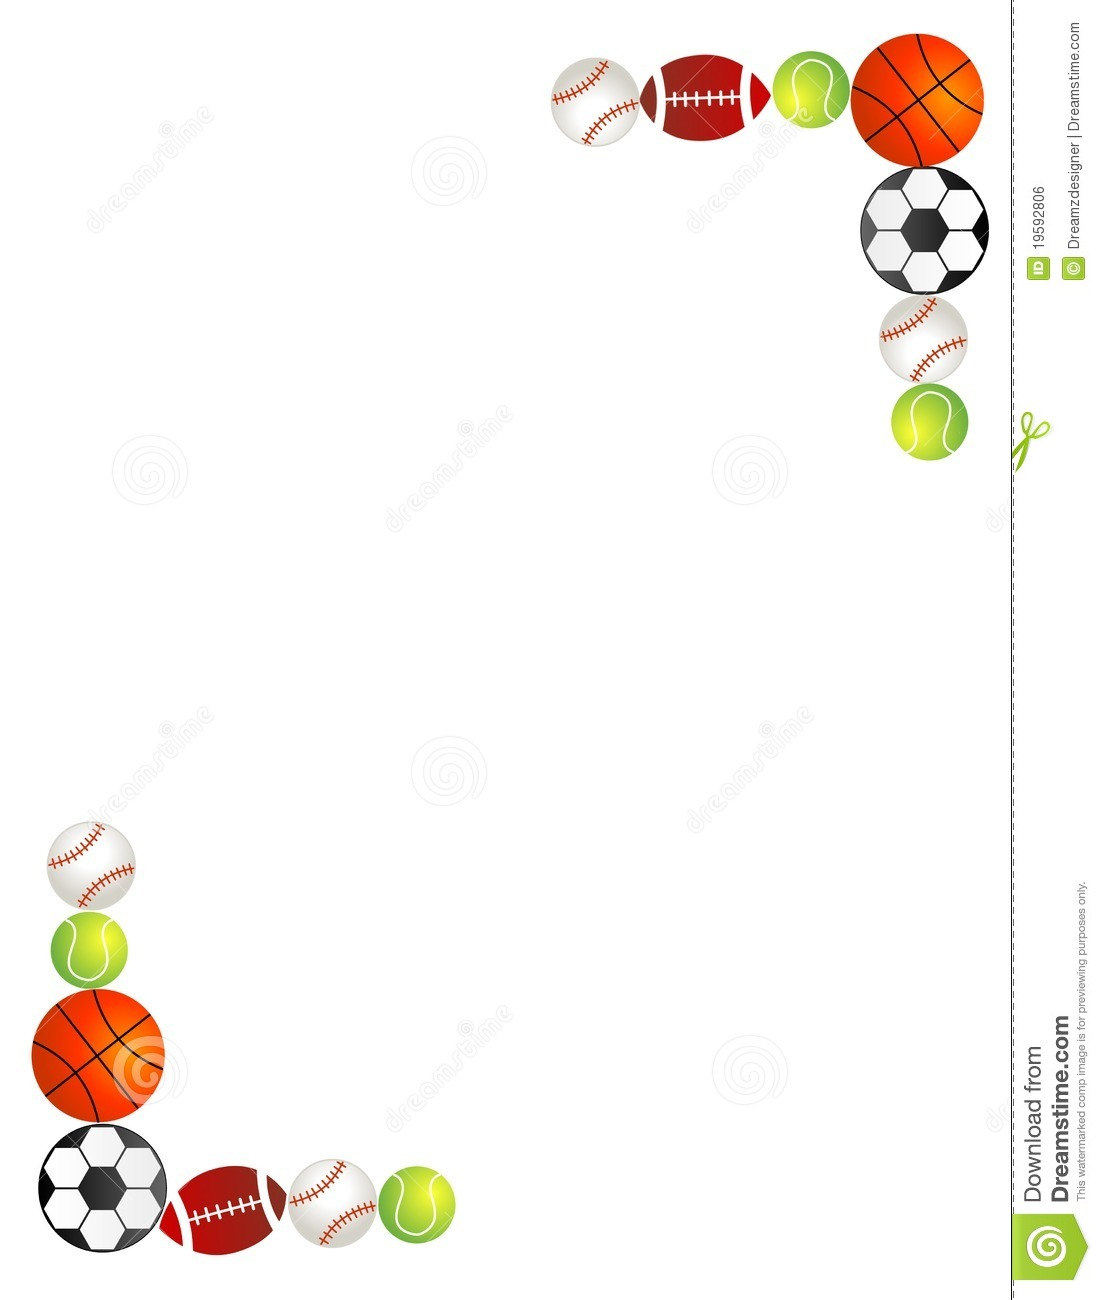 Sport balls border / frame stock vector. Illustration of ...